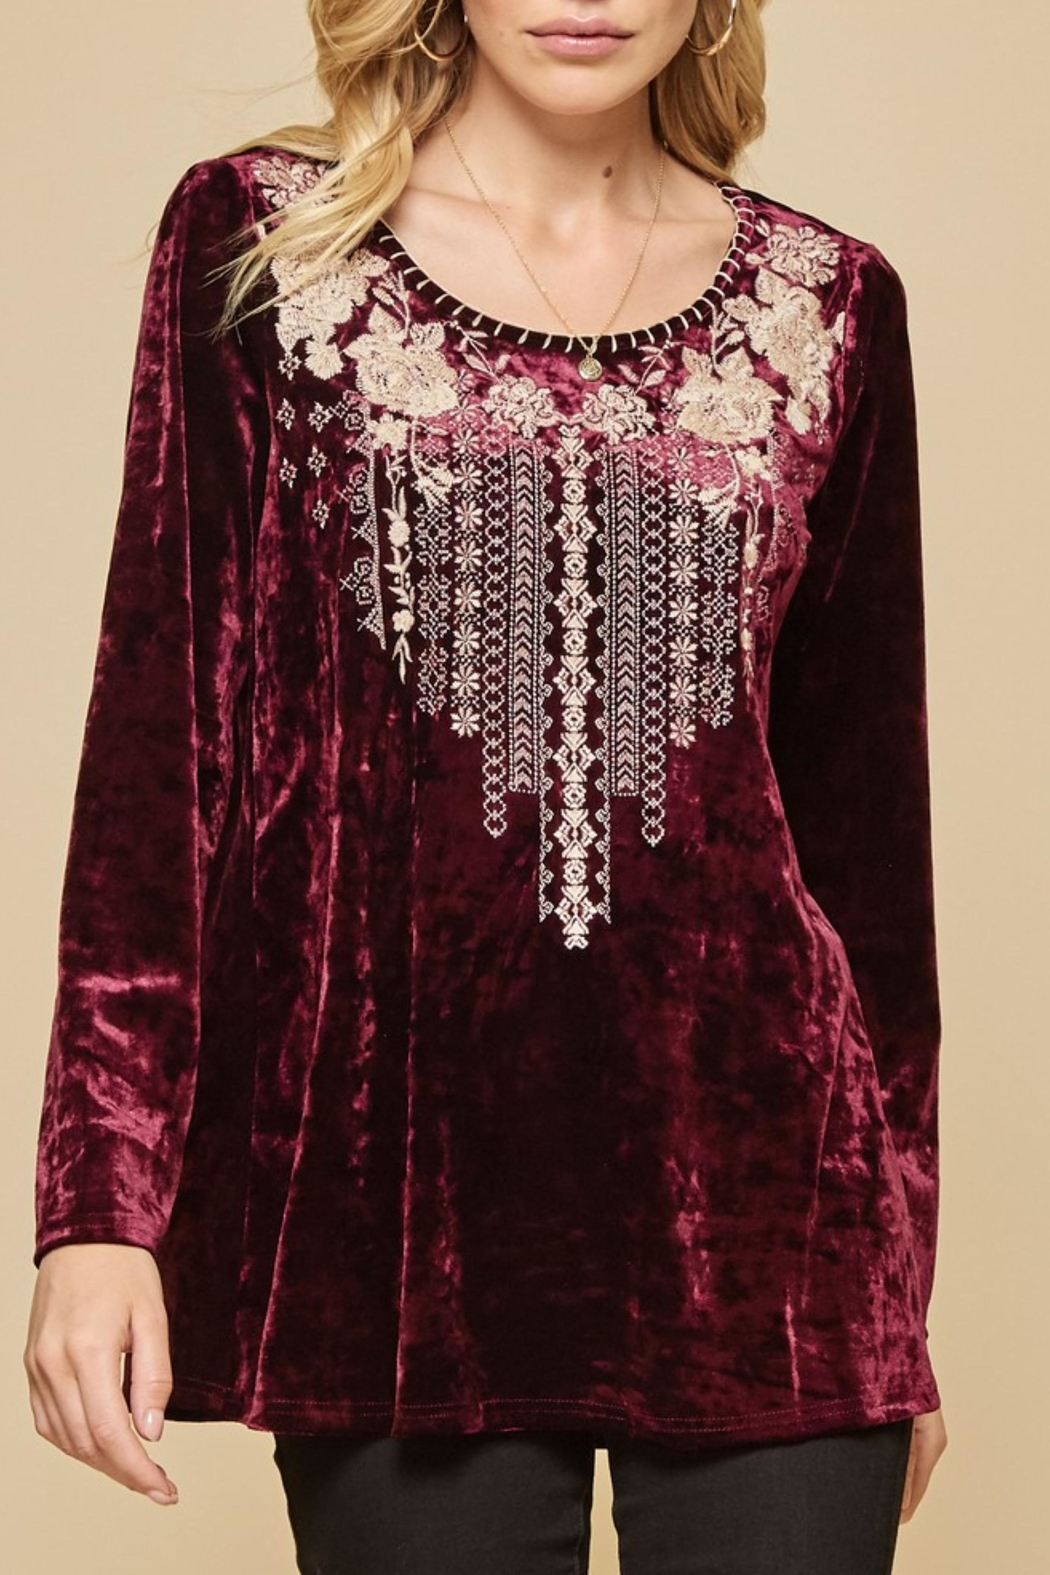 Andree by Unit Embroidered Velvet Top - Main Image